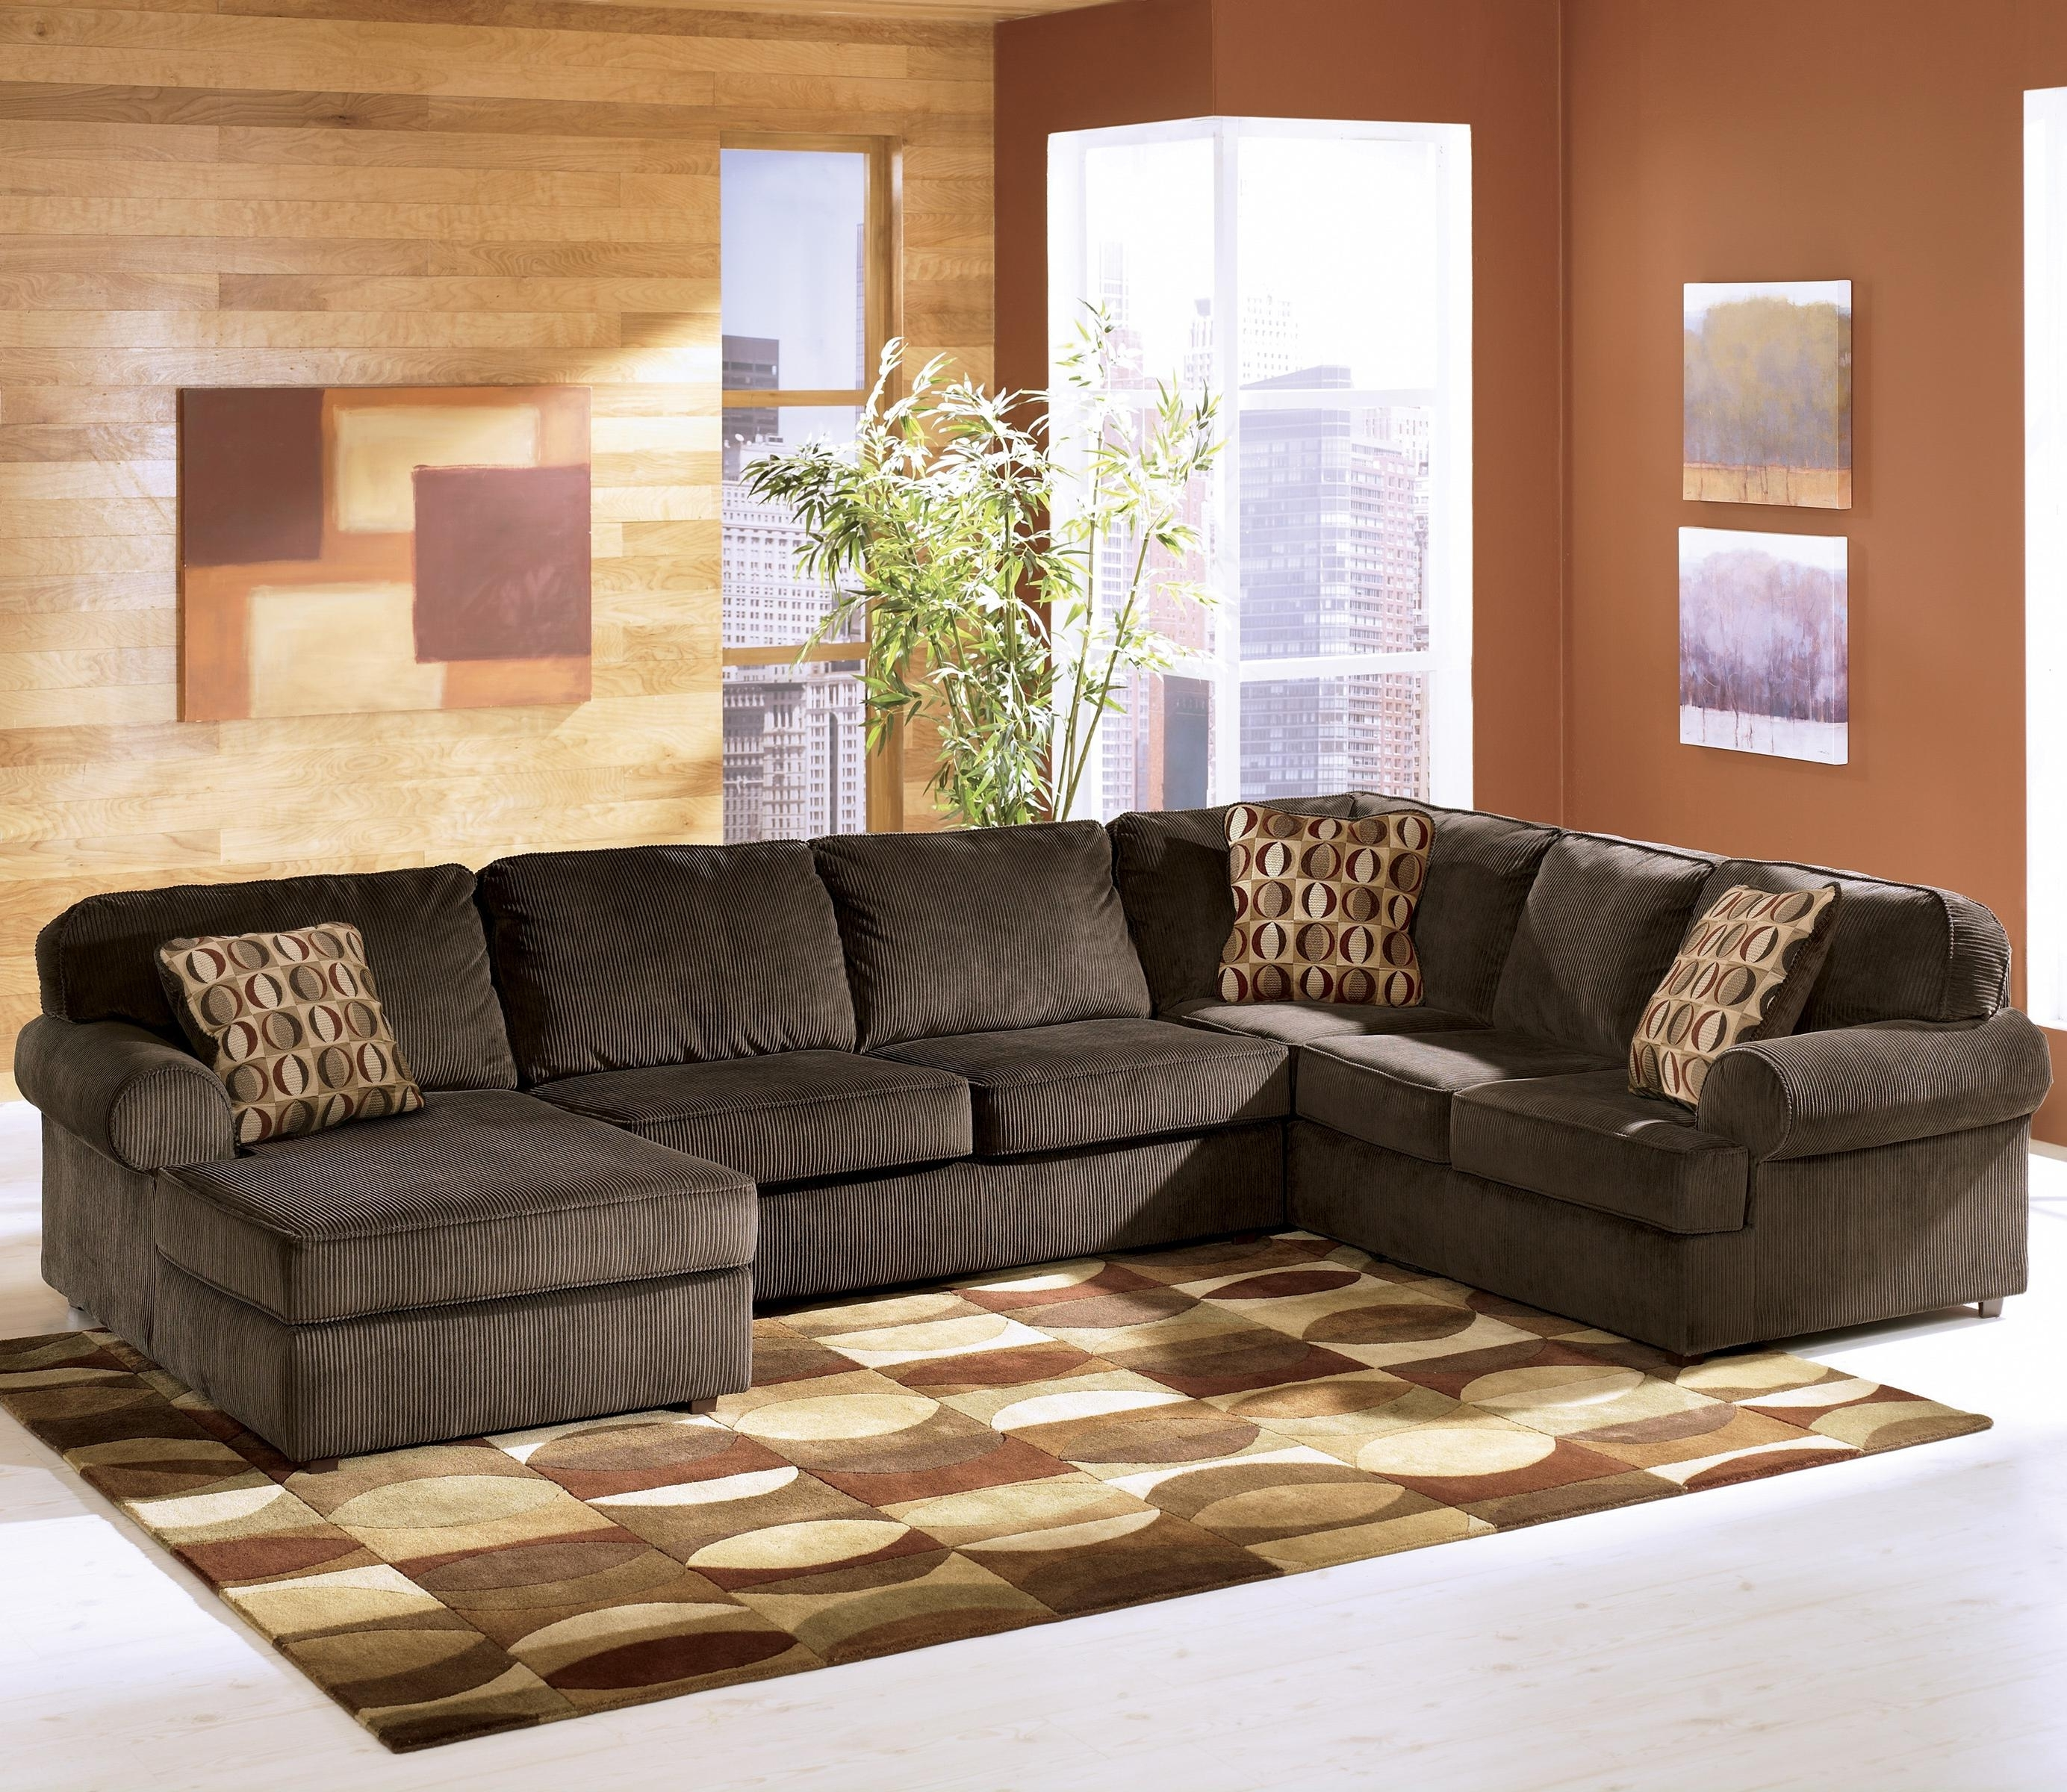 Vista - Chocolate 3-Piece Sectional With Right Chaiseashley regarding Most Up-to-Date 3 Piece Sectional Sleeper Sofas